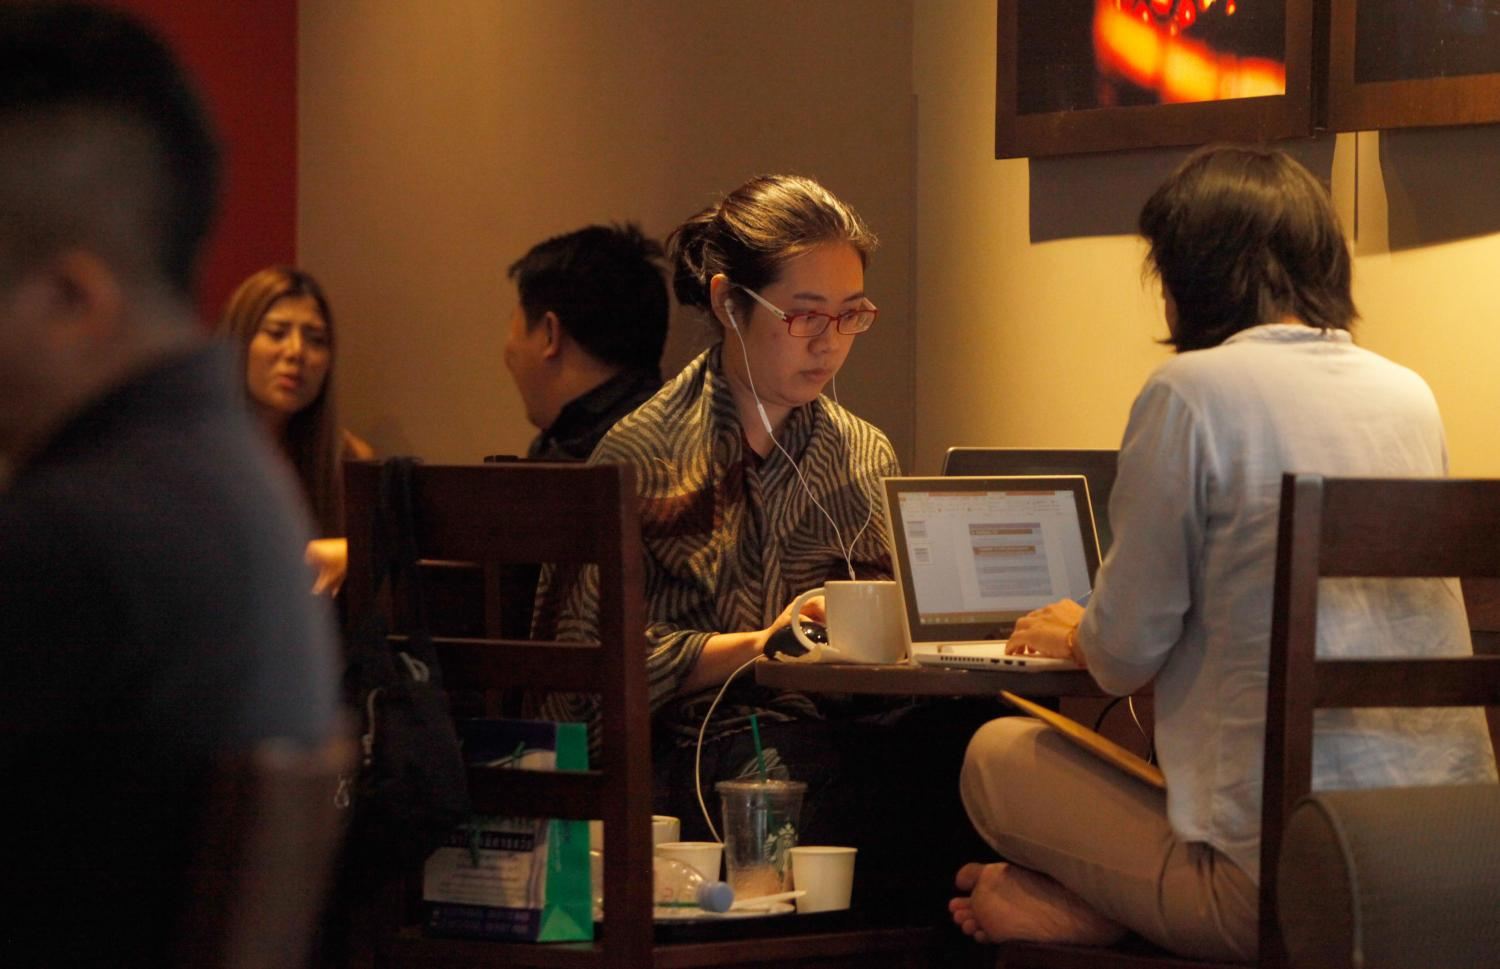 Coffee shops must keep traffic data for at least 90 days in line with Section 26 of the Computer Crime Act. (Photo by Jiraporn Kuhakan)